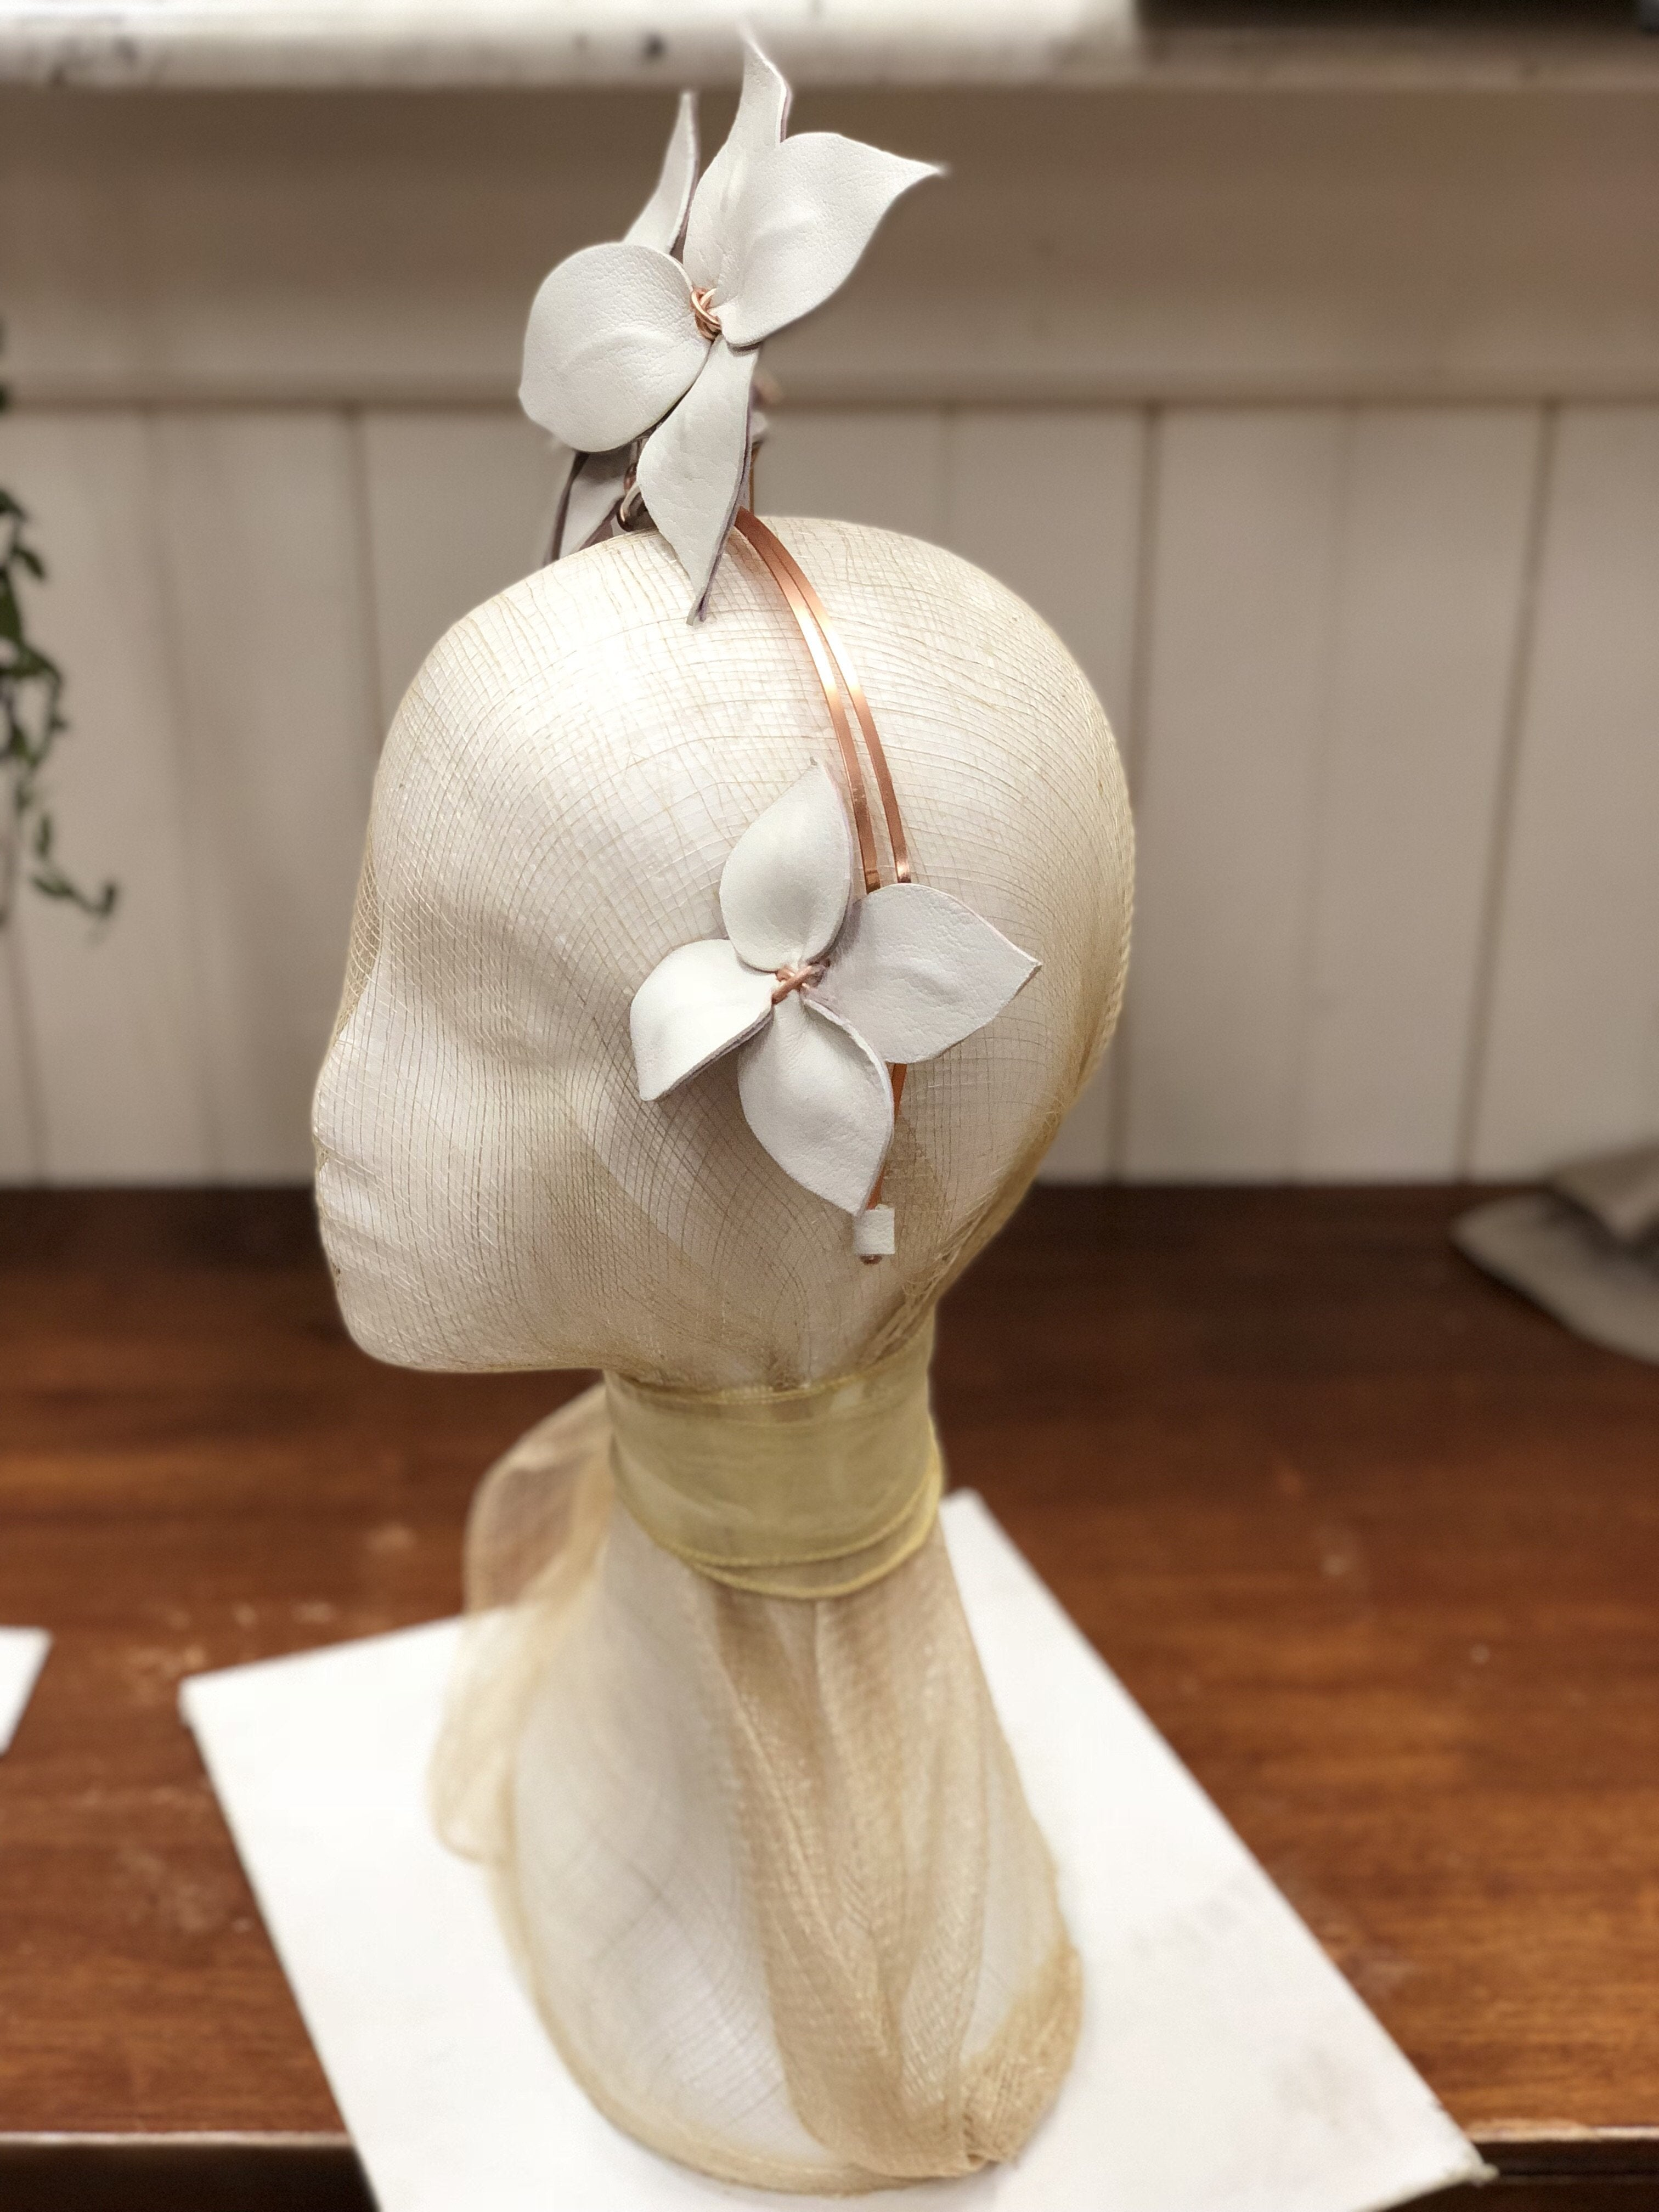 Fleur Cuir Star Flowers Asymmetrical Leather Headband in White & Violet Pink - Lookbook Boutique